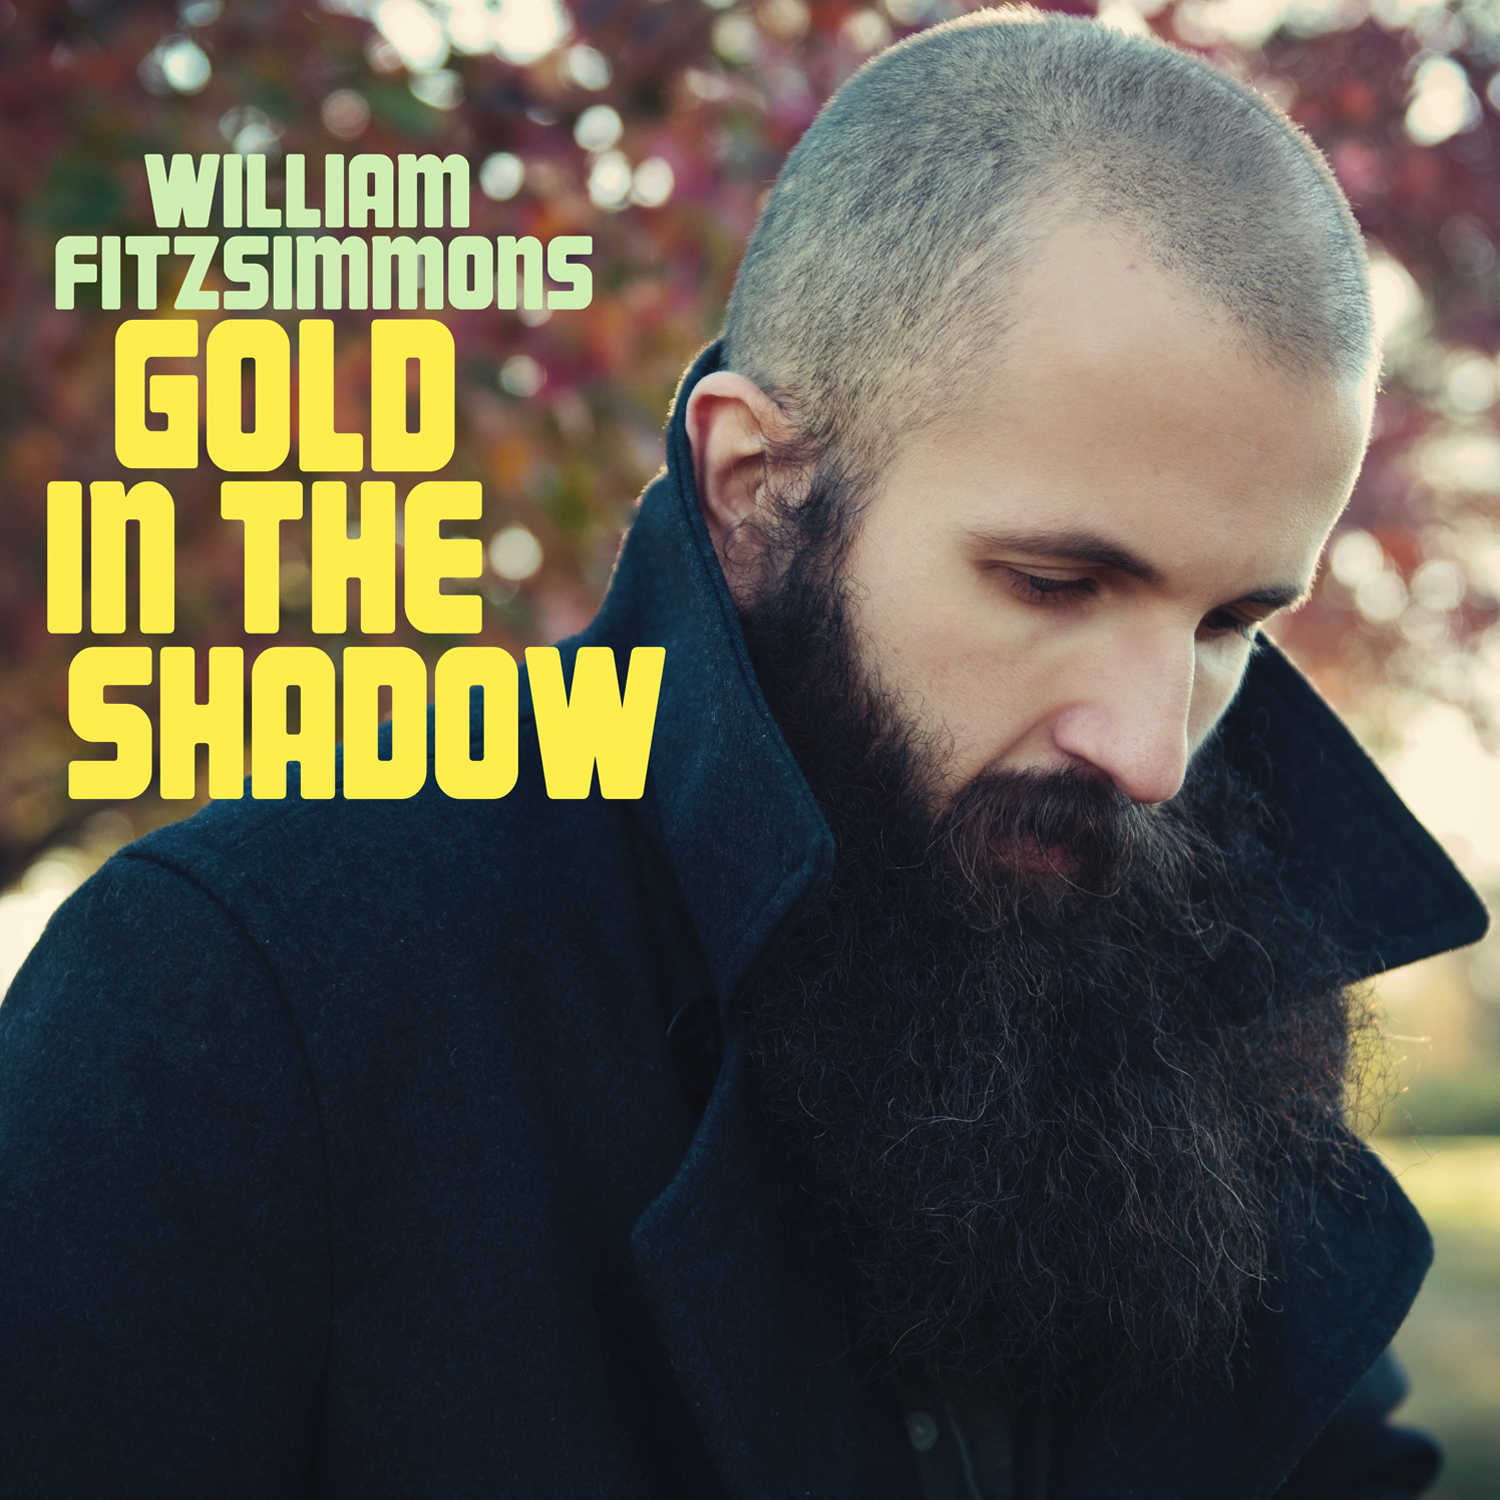 William Fitzsimmons Gold In The Shadow